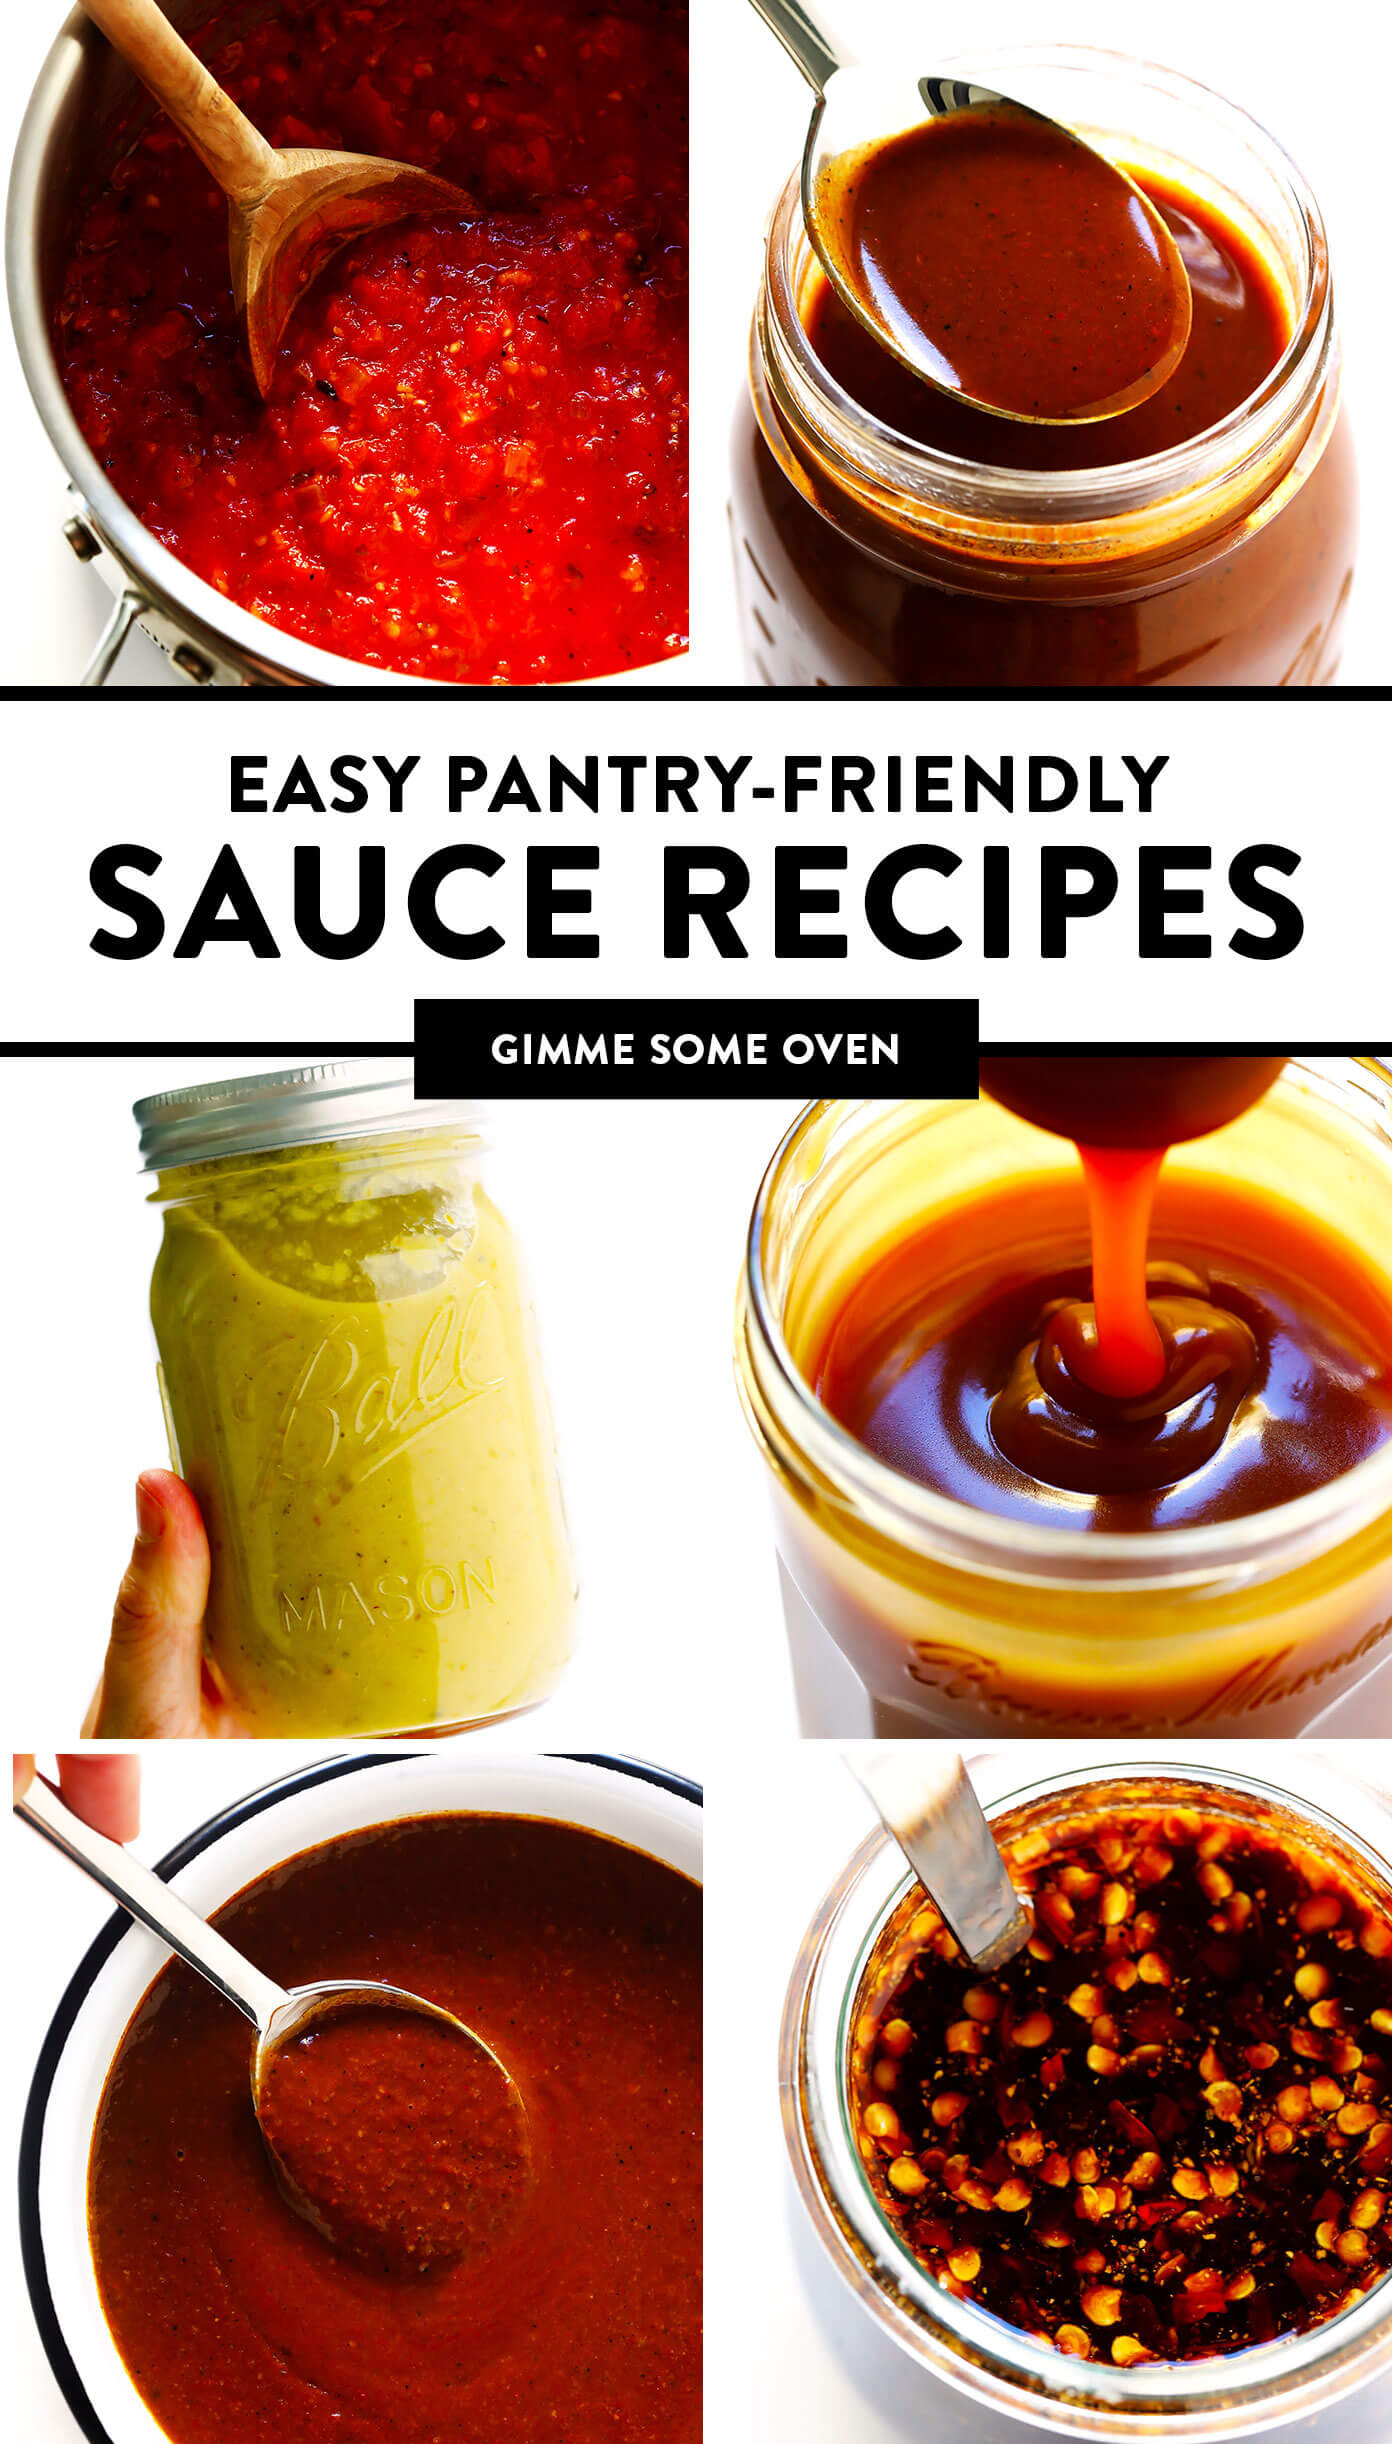 Easy Pantry-Friendly Sauce Recipes